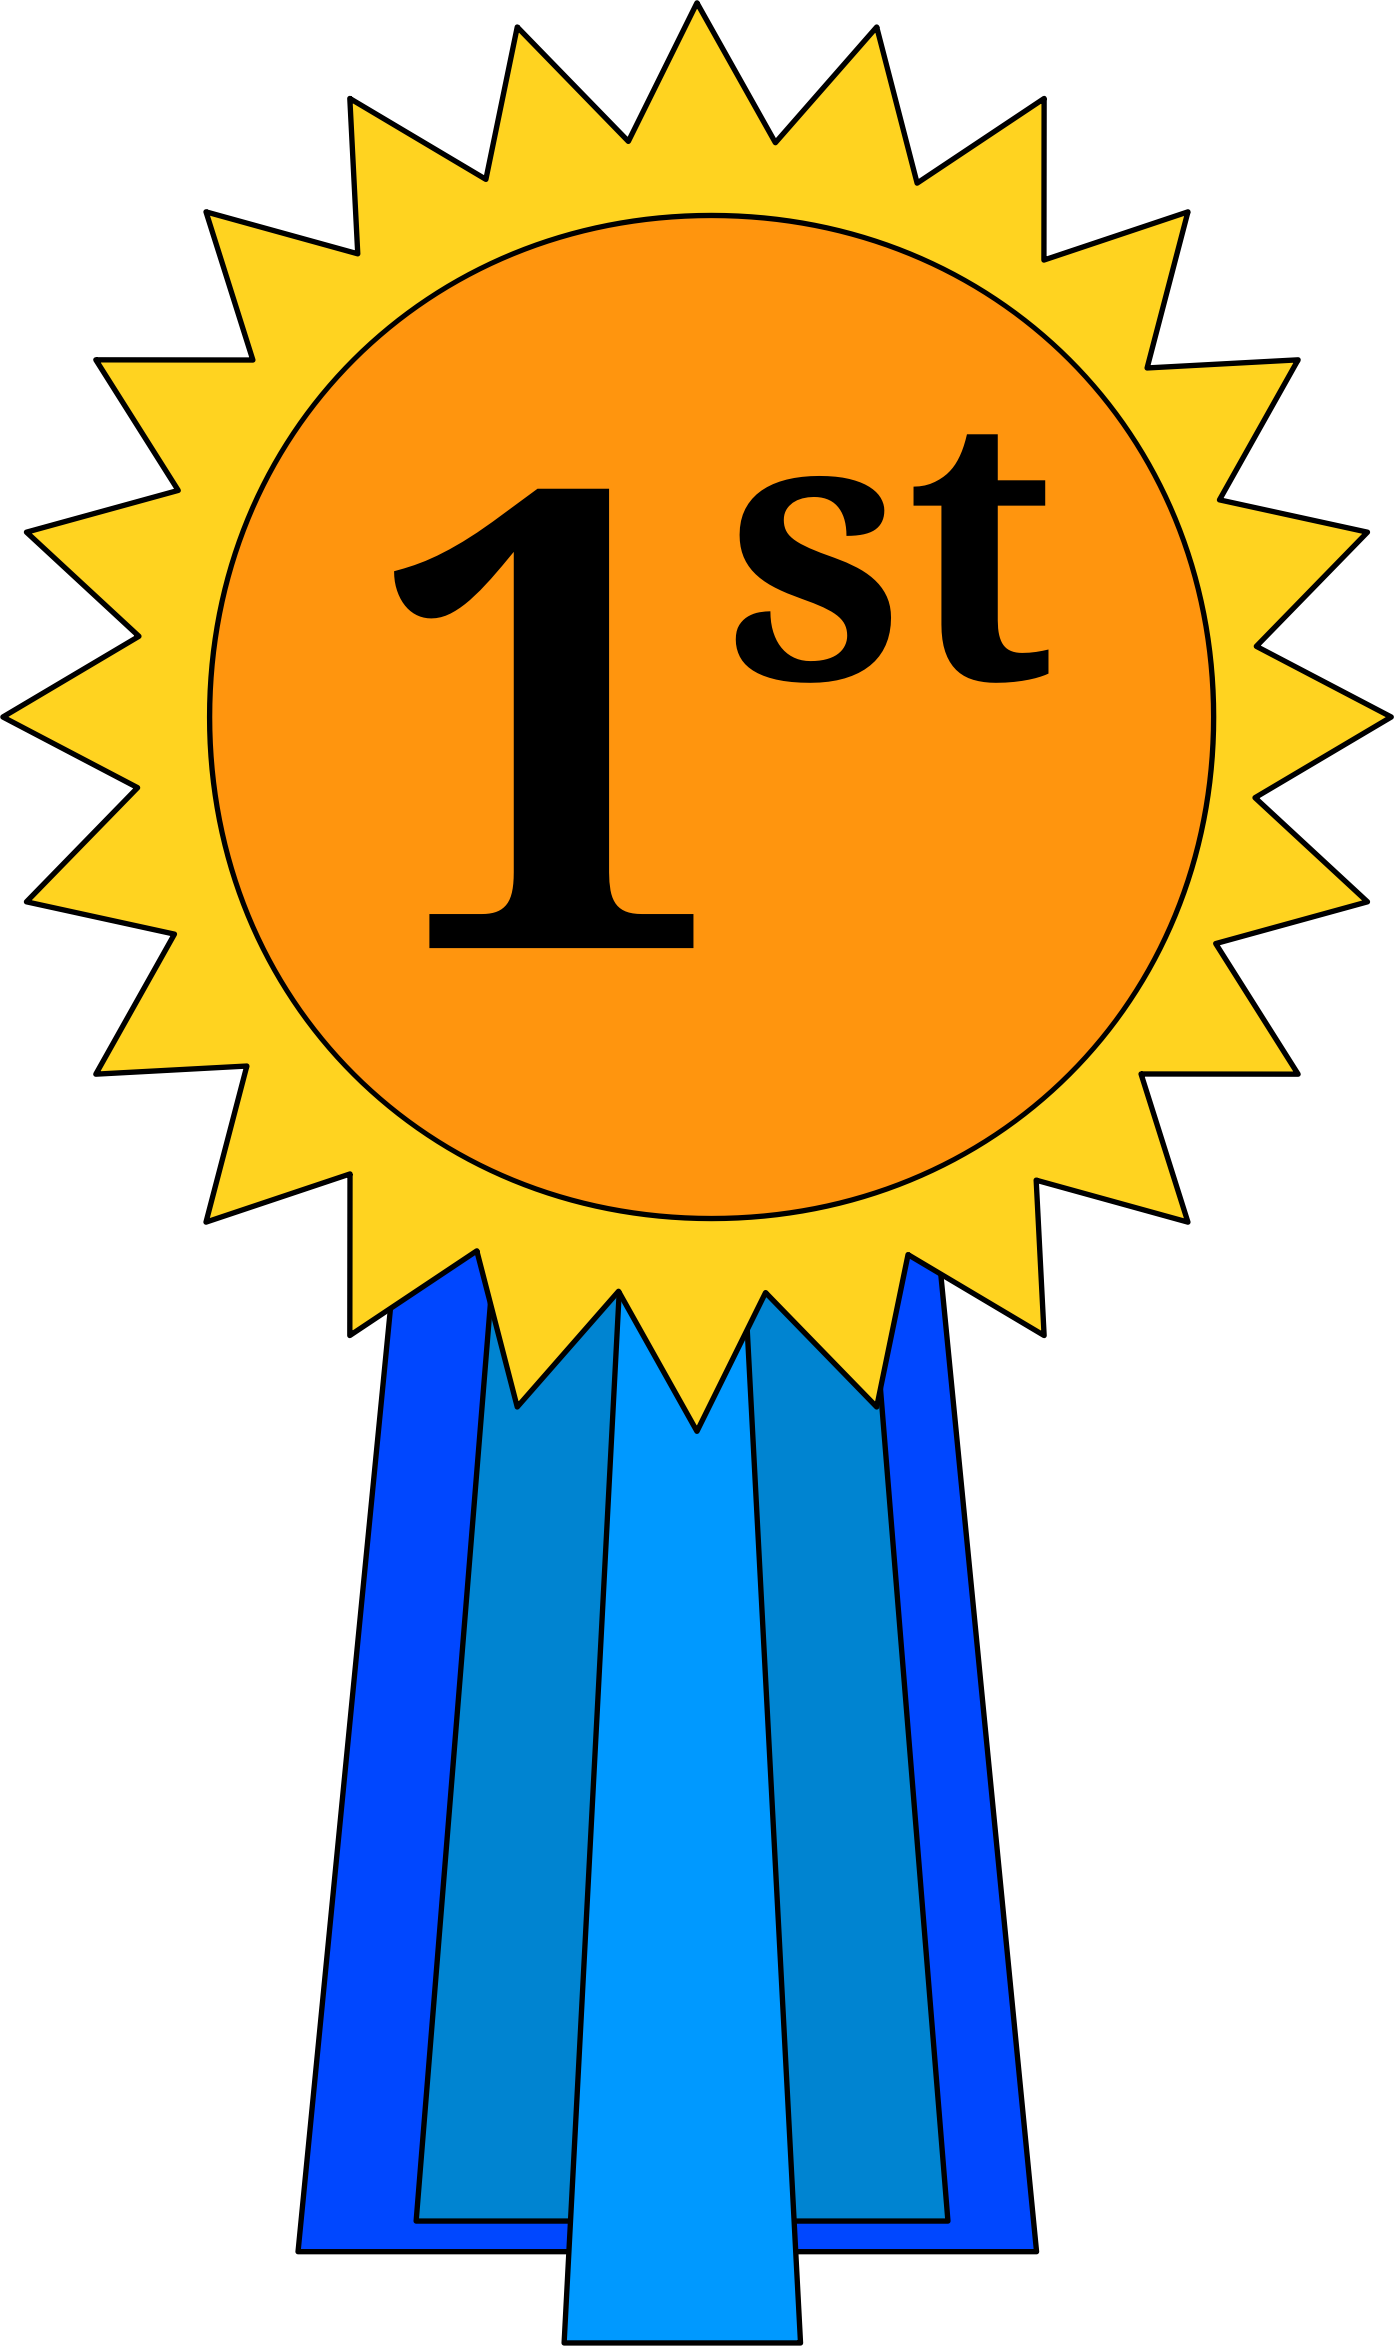 1st place ribbon png